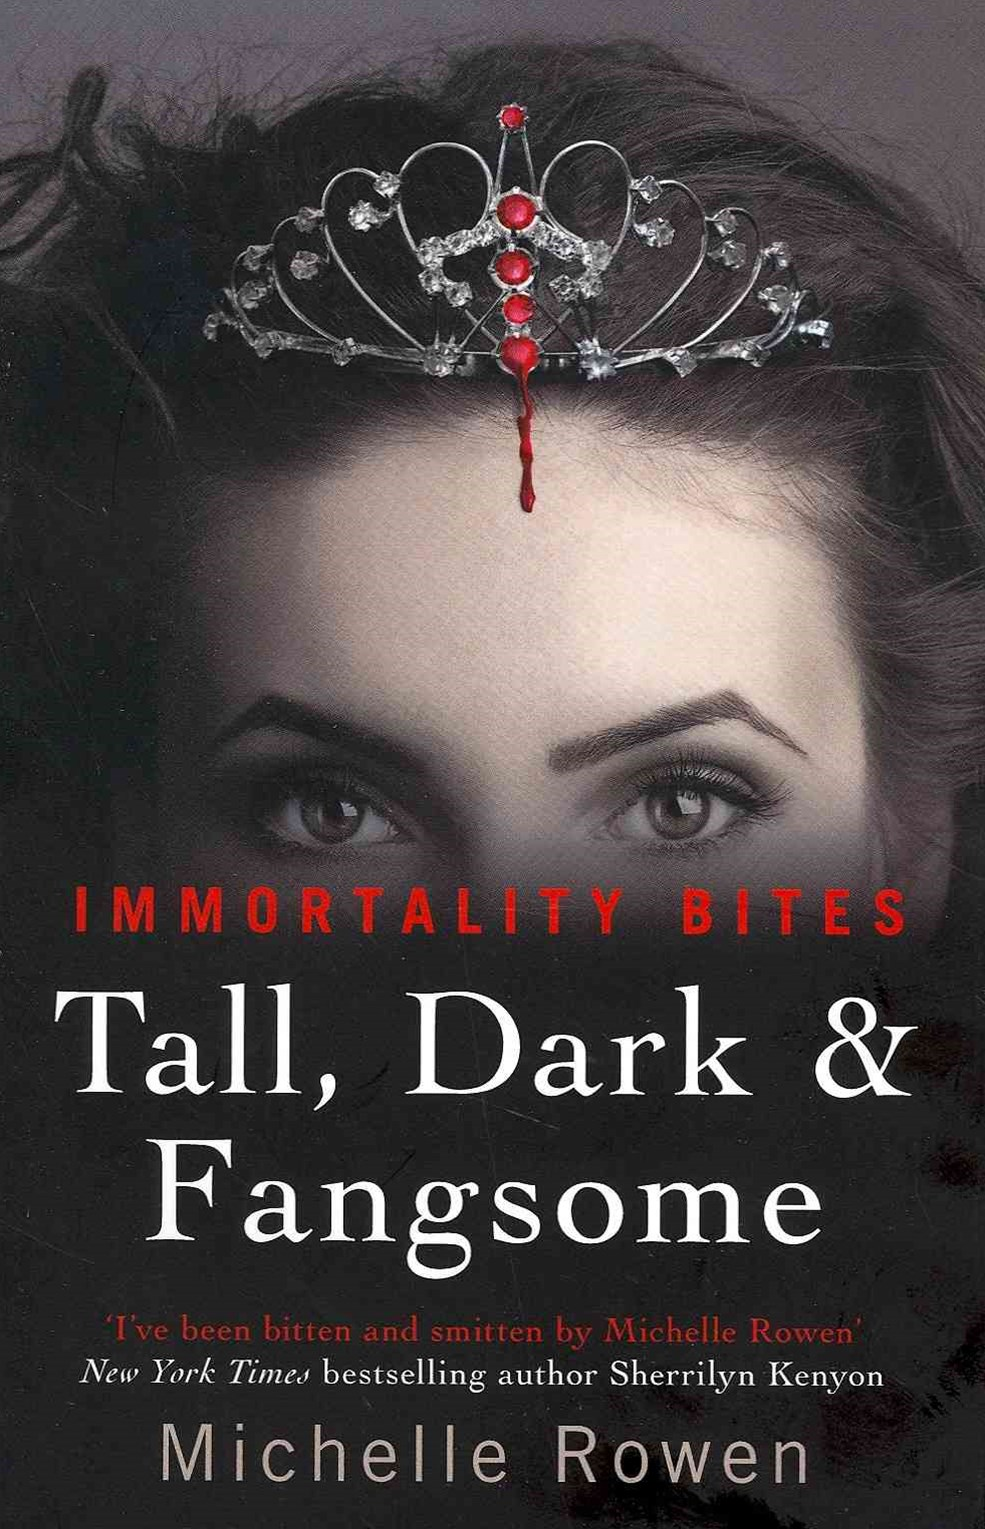 Tall, Dark & Fangsome